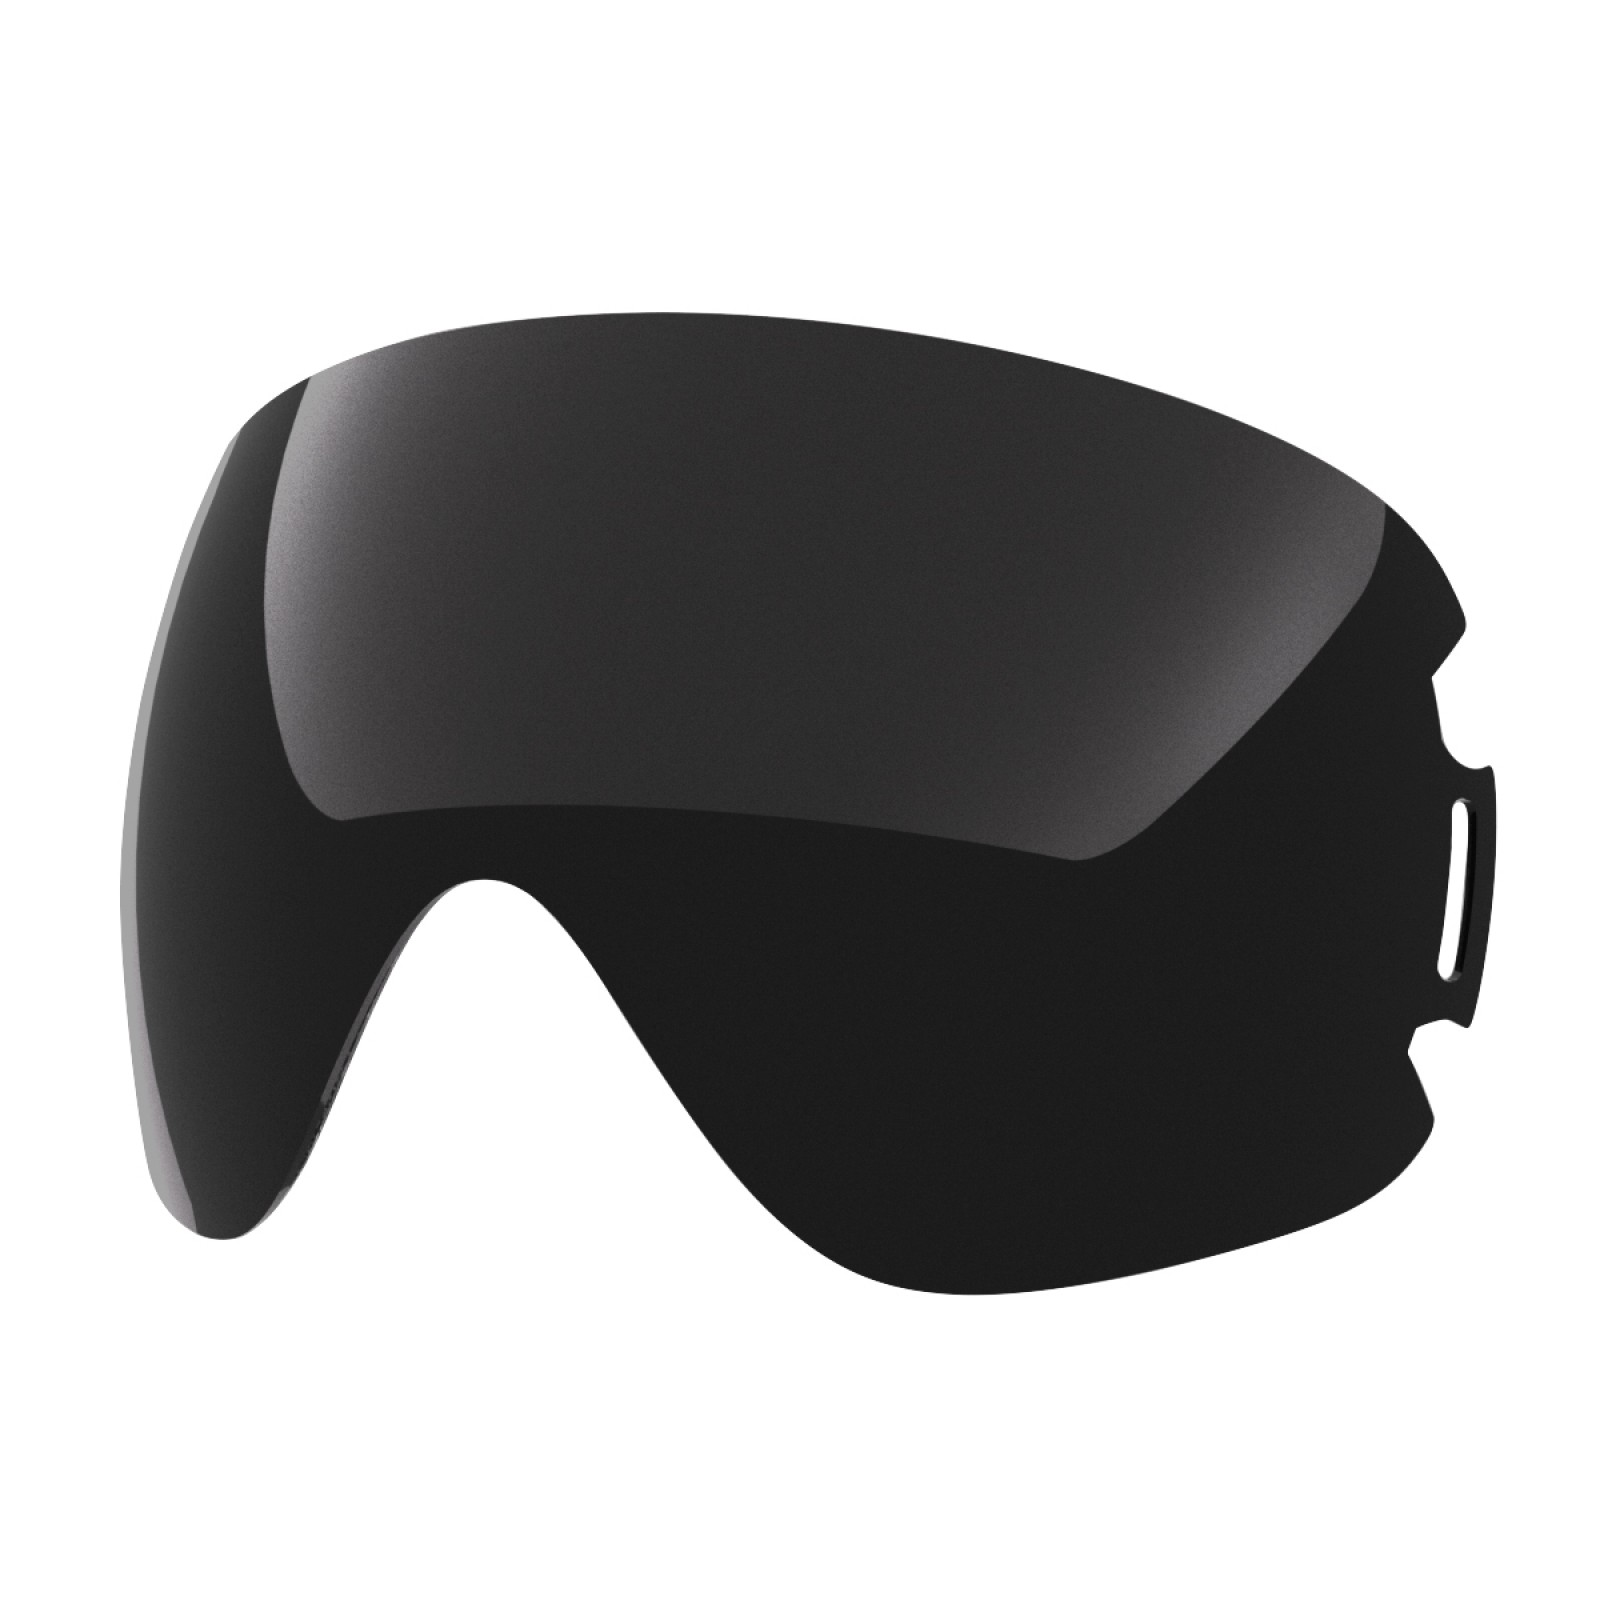 SMOKE lens for  Open goggle